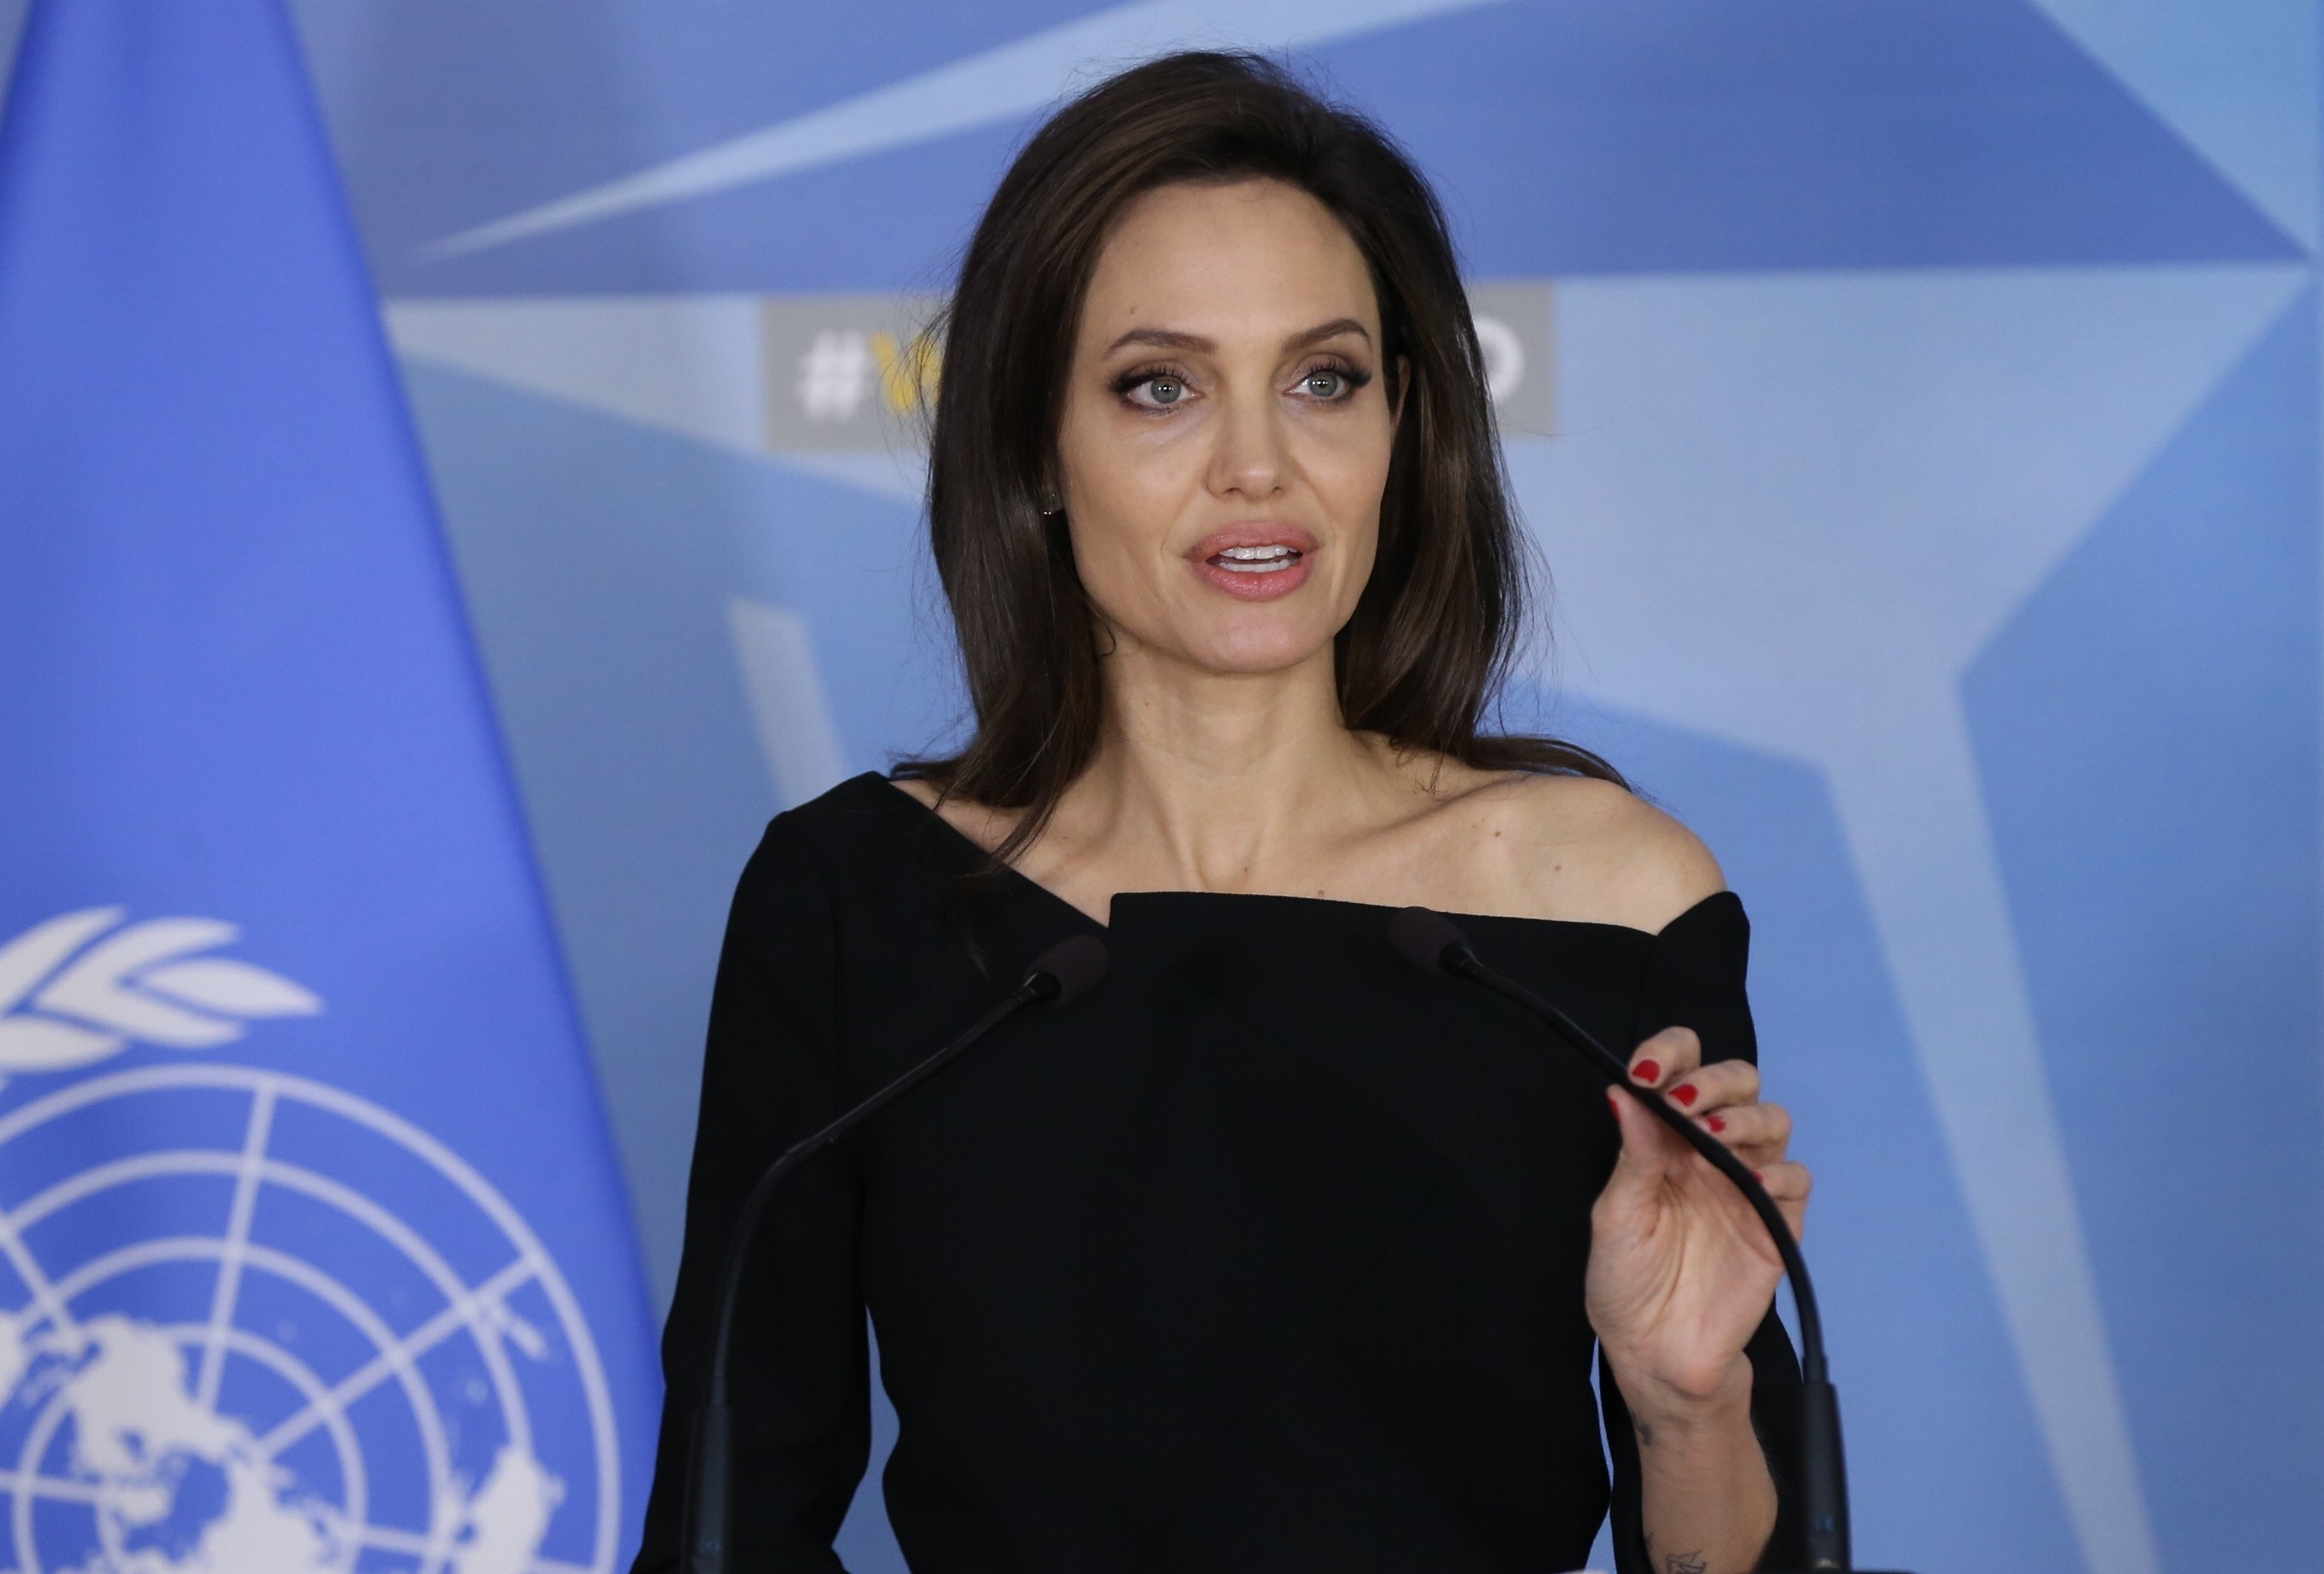 Angelina stands in front of a microphone